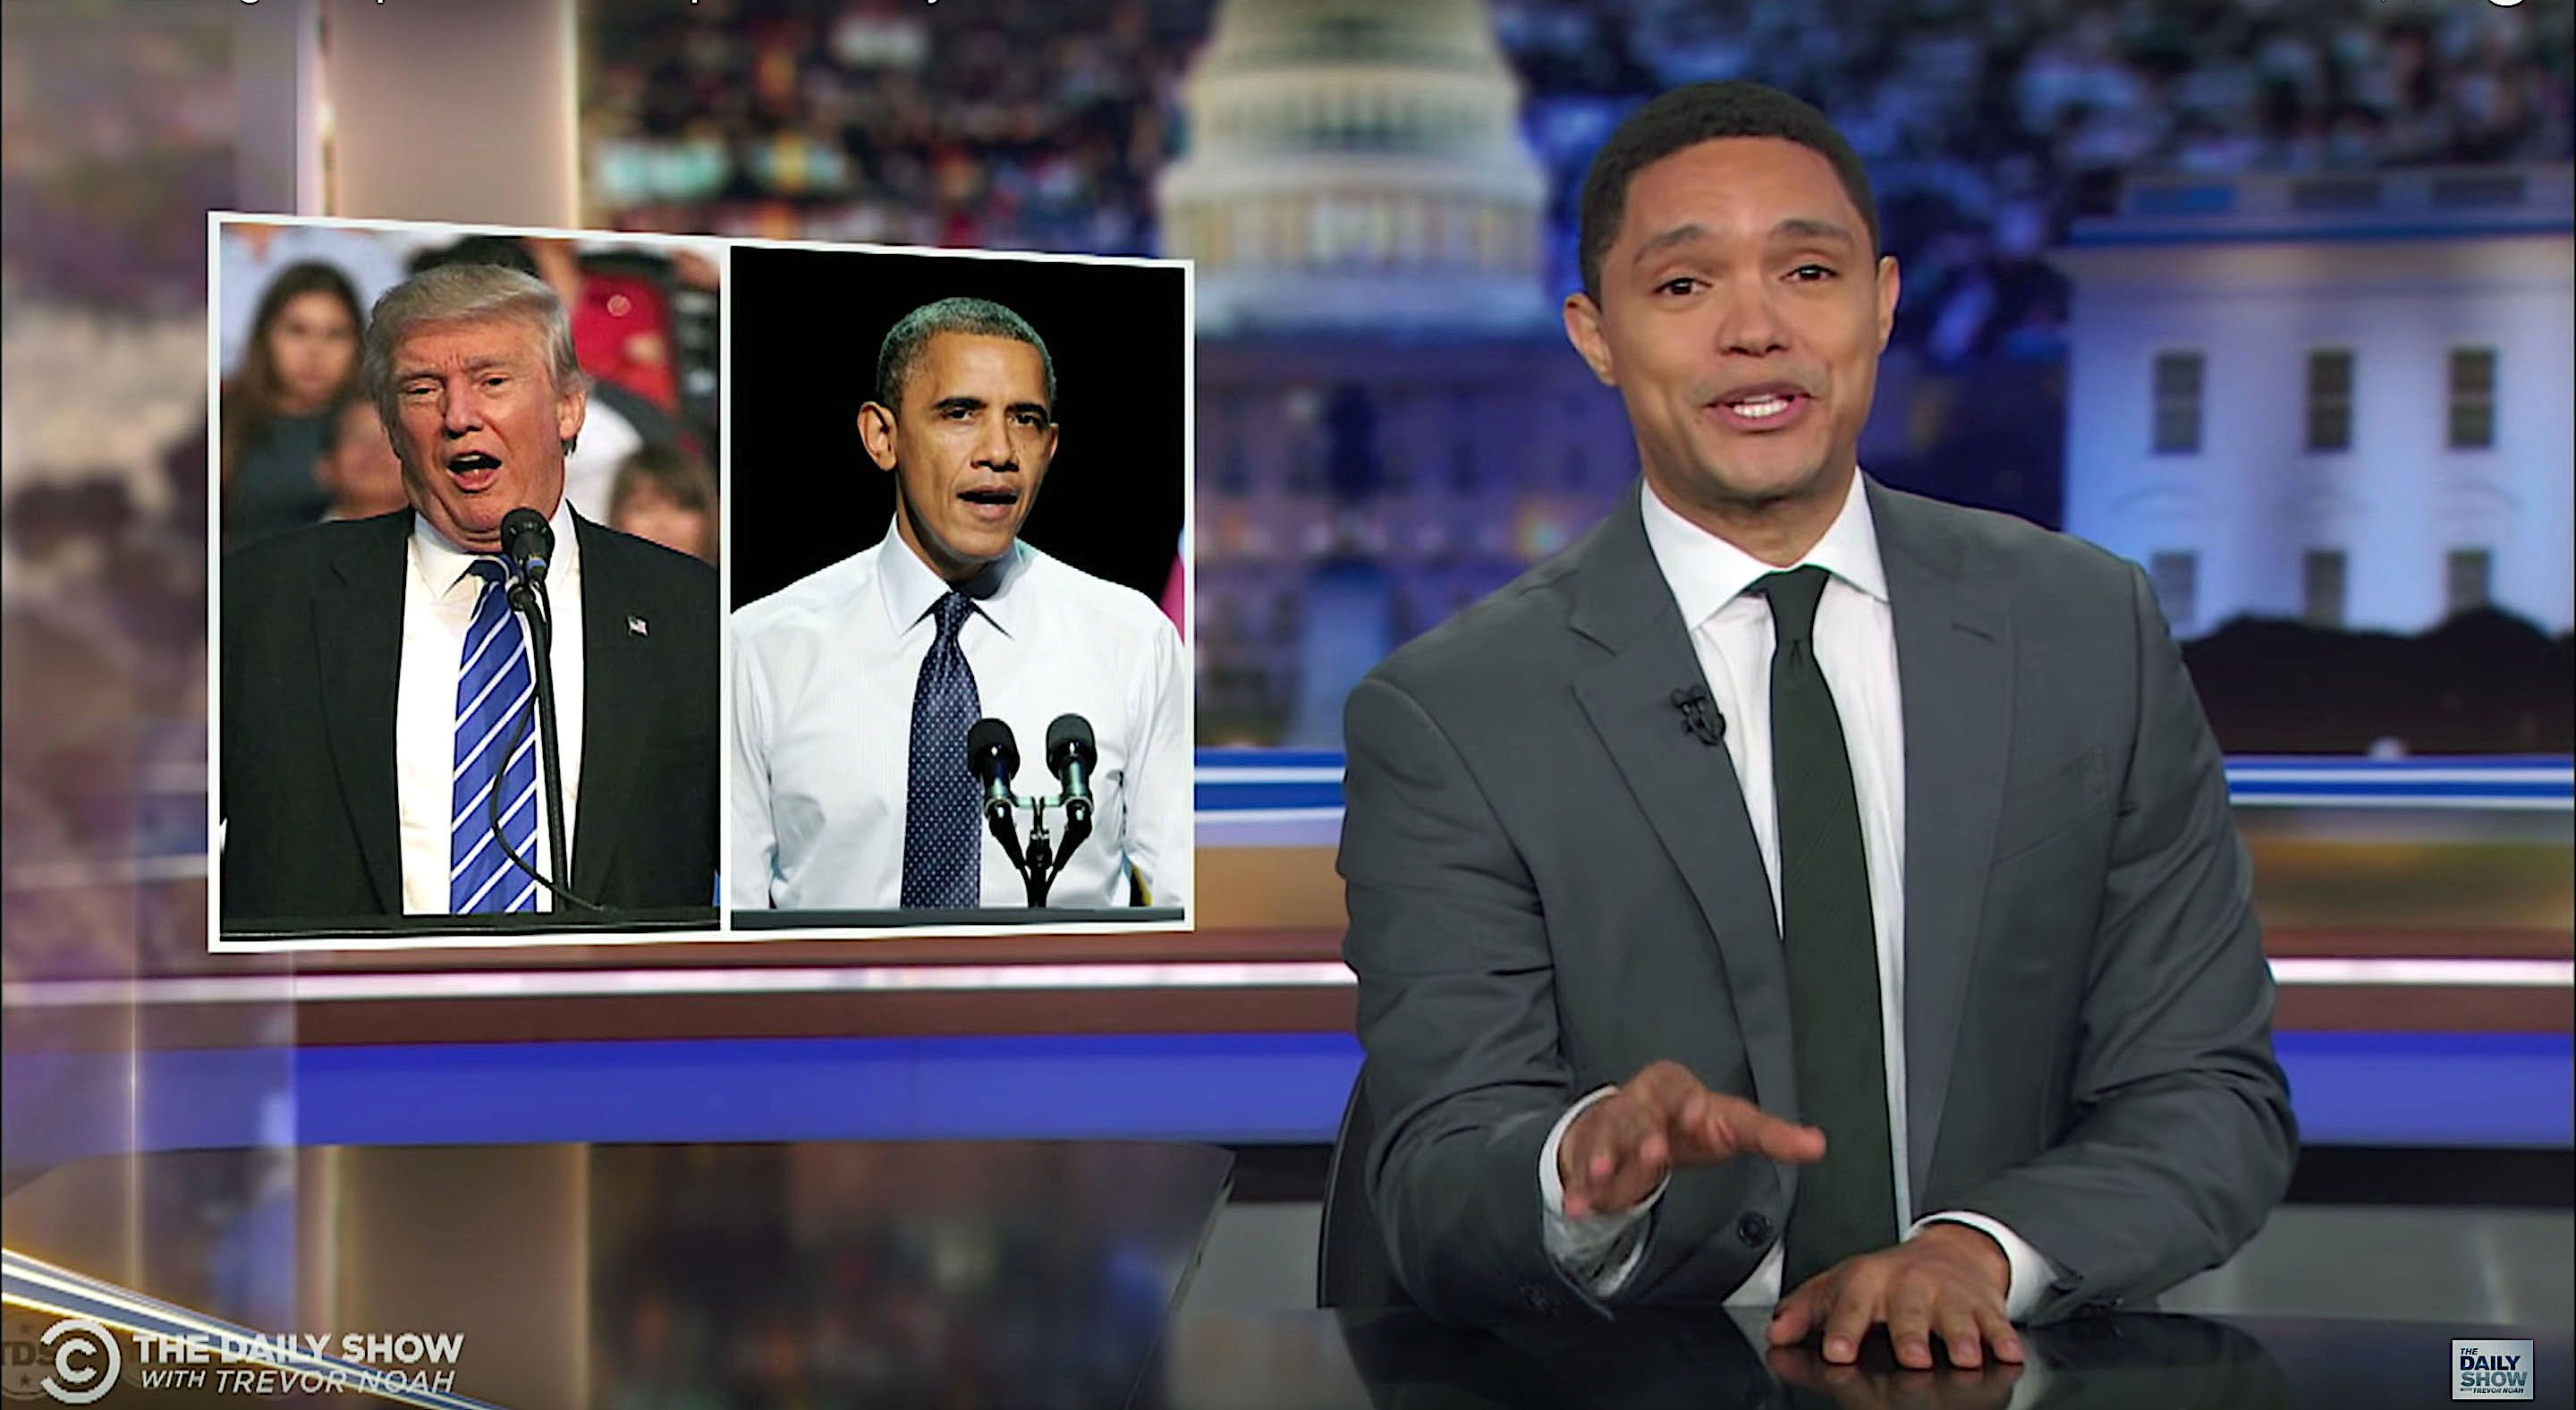 Trevor Noah of The Daily Show muses about who would win if Barack Obama ran against Donald Trump